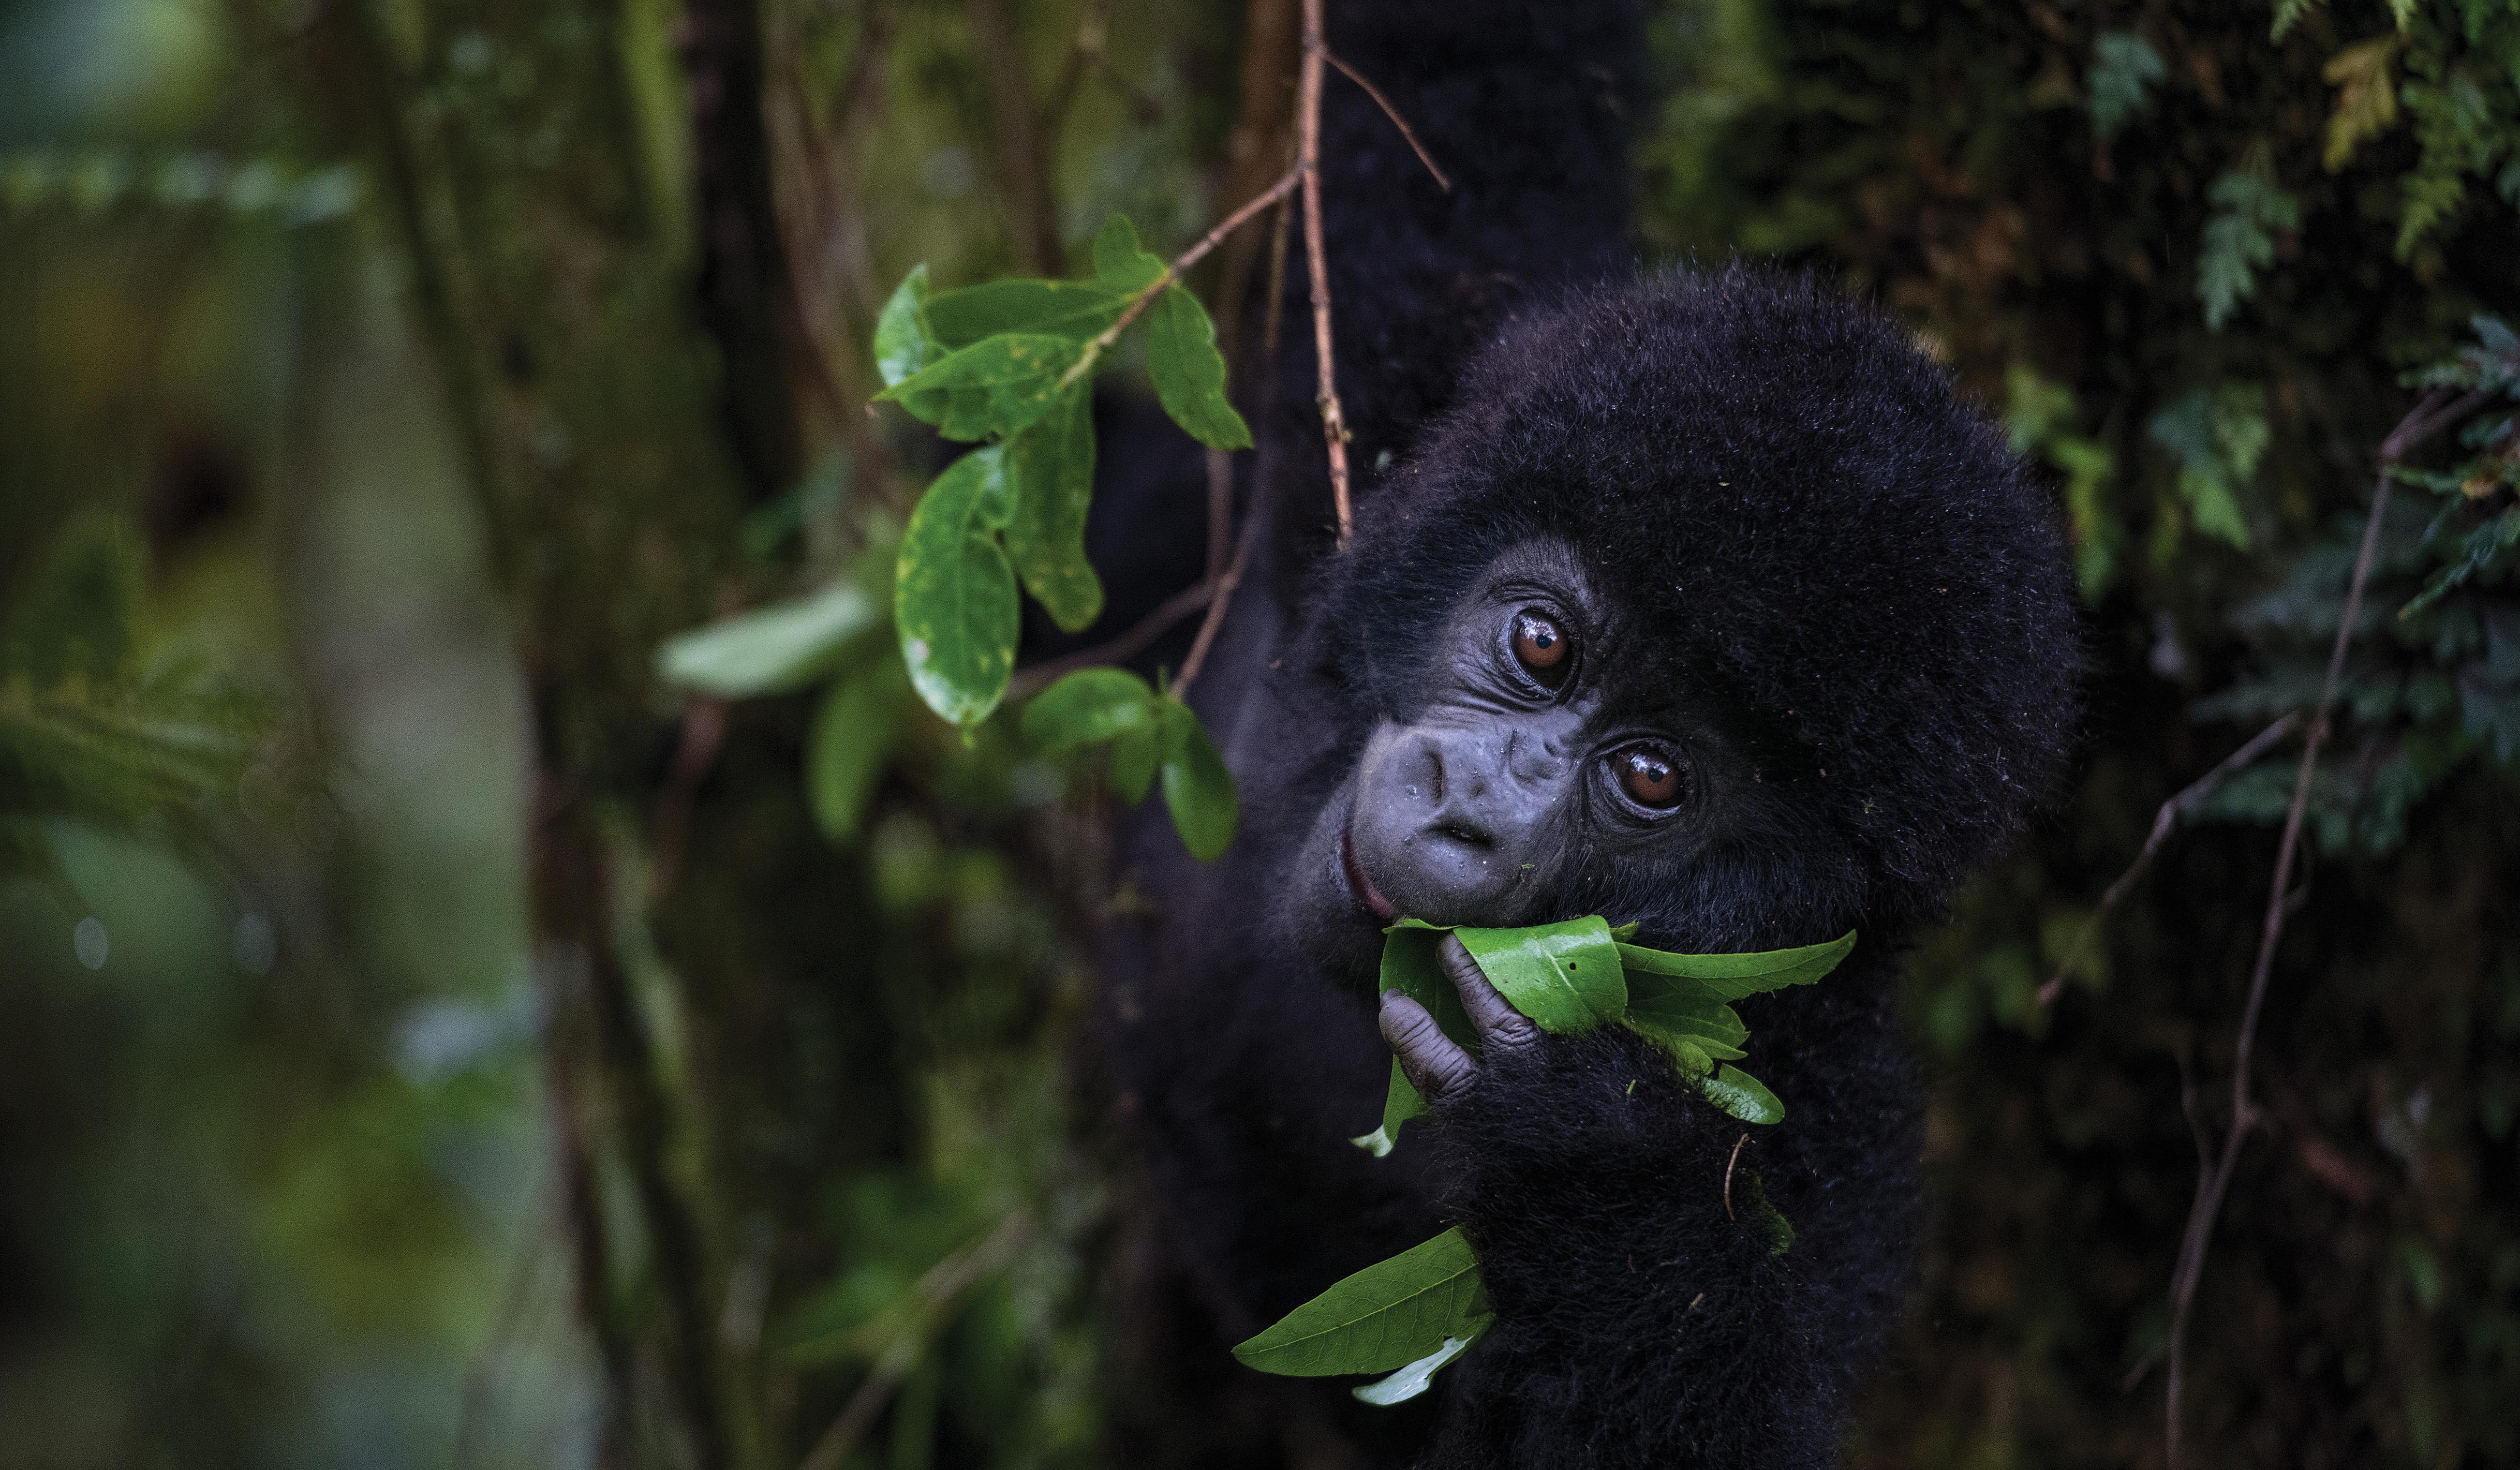 In Uganda's Mgahinga National Park, a 14-month-old male named Imbanzabigwi is poised to transition from mother's milk to foraging.